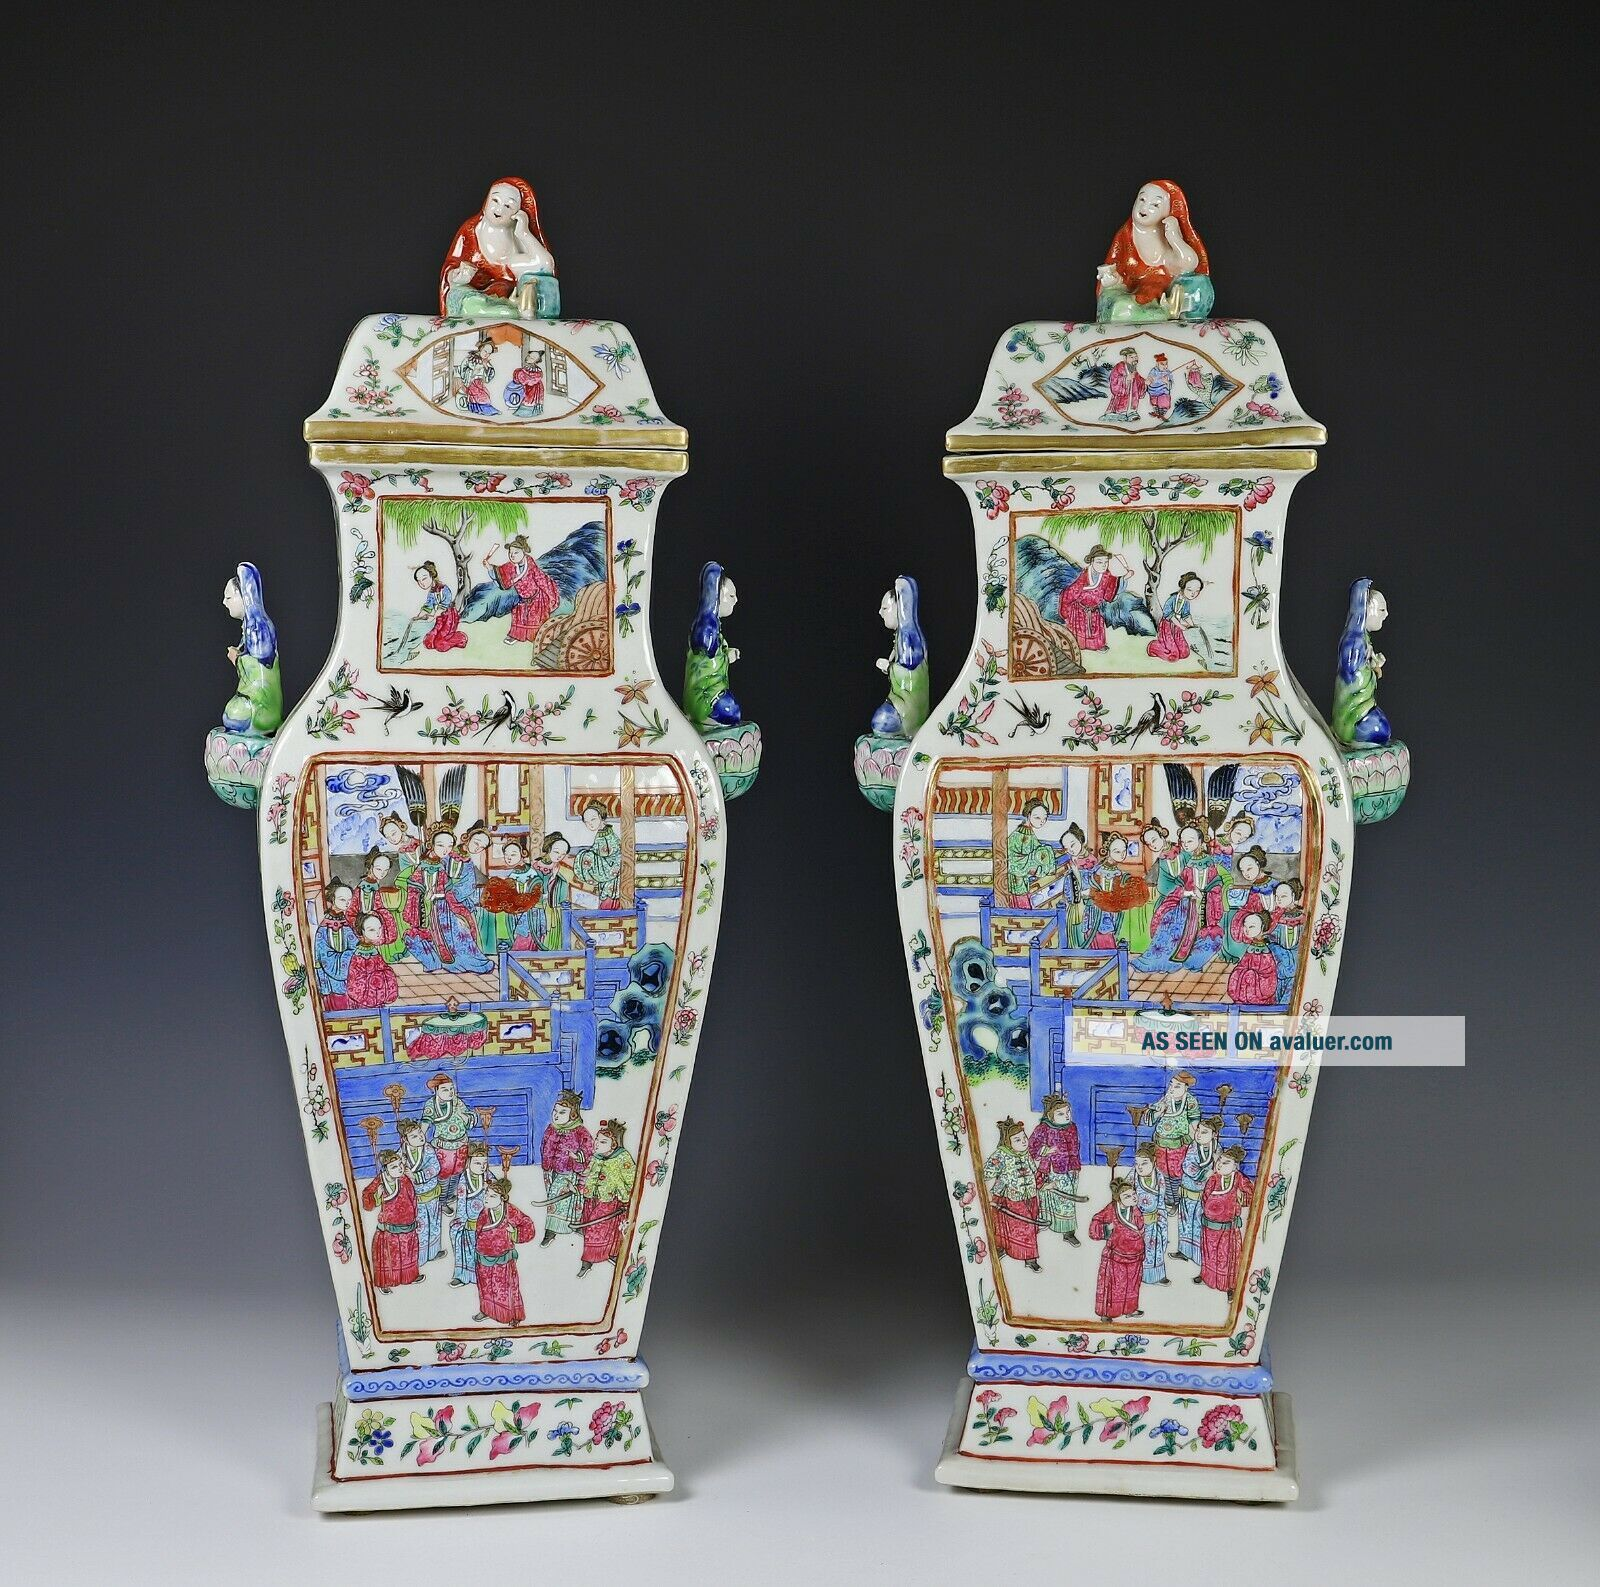 Impressive Antique Chinese Porcelain Covered Vases with Figural Handles